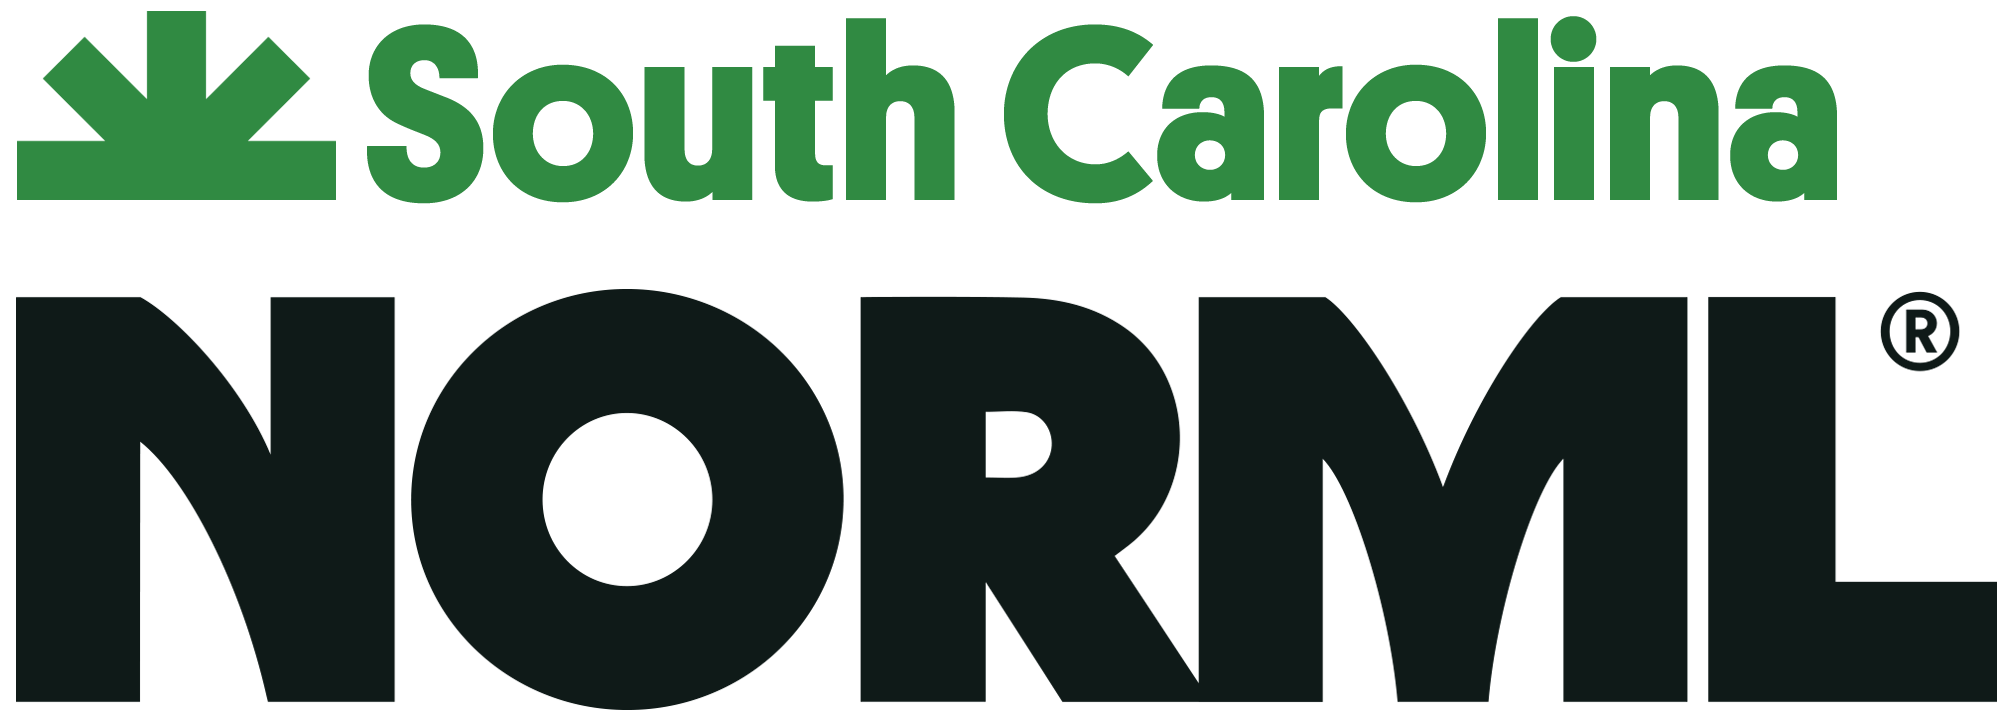 South_carolina_norml_logo